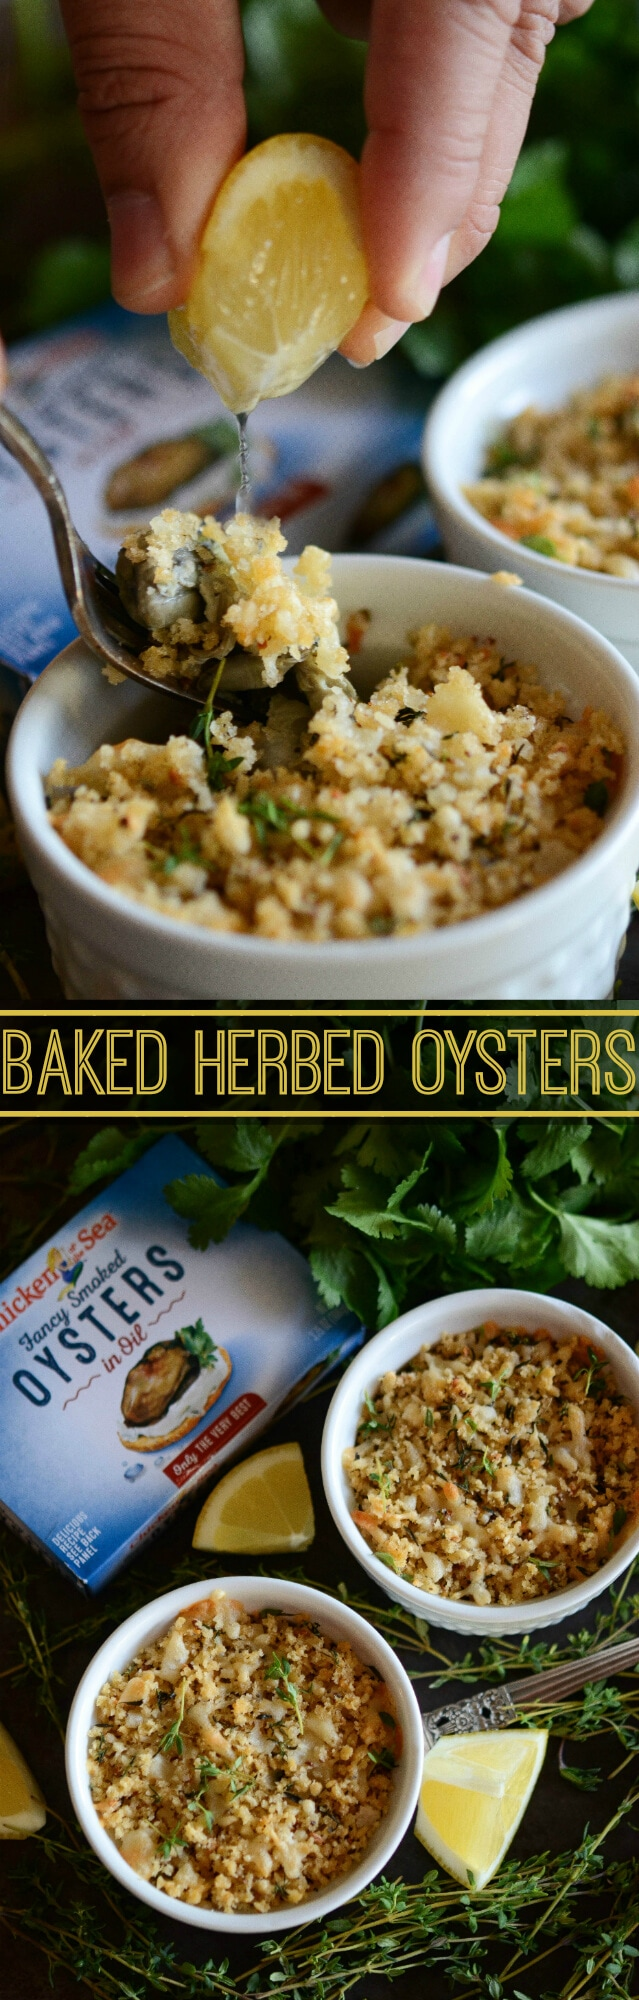 Baked Herbed Oysters with a crispy parmesan breadcrumb topping!